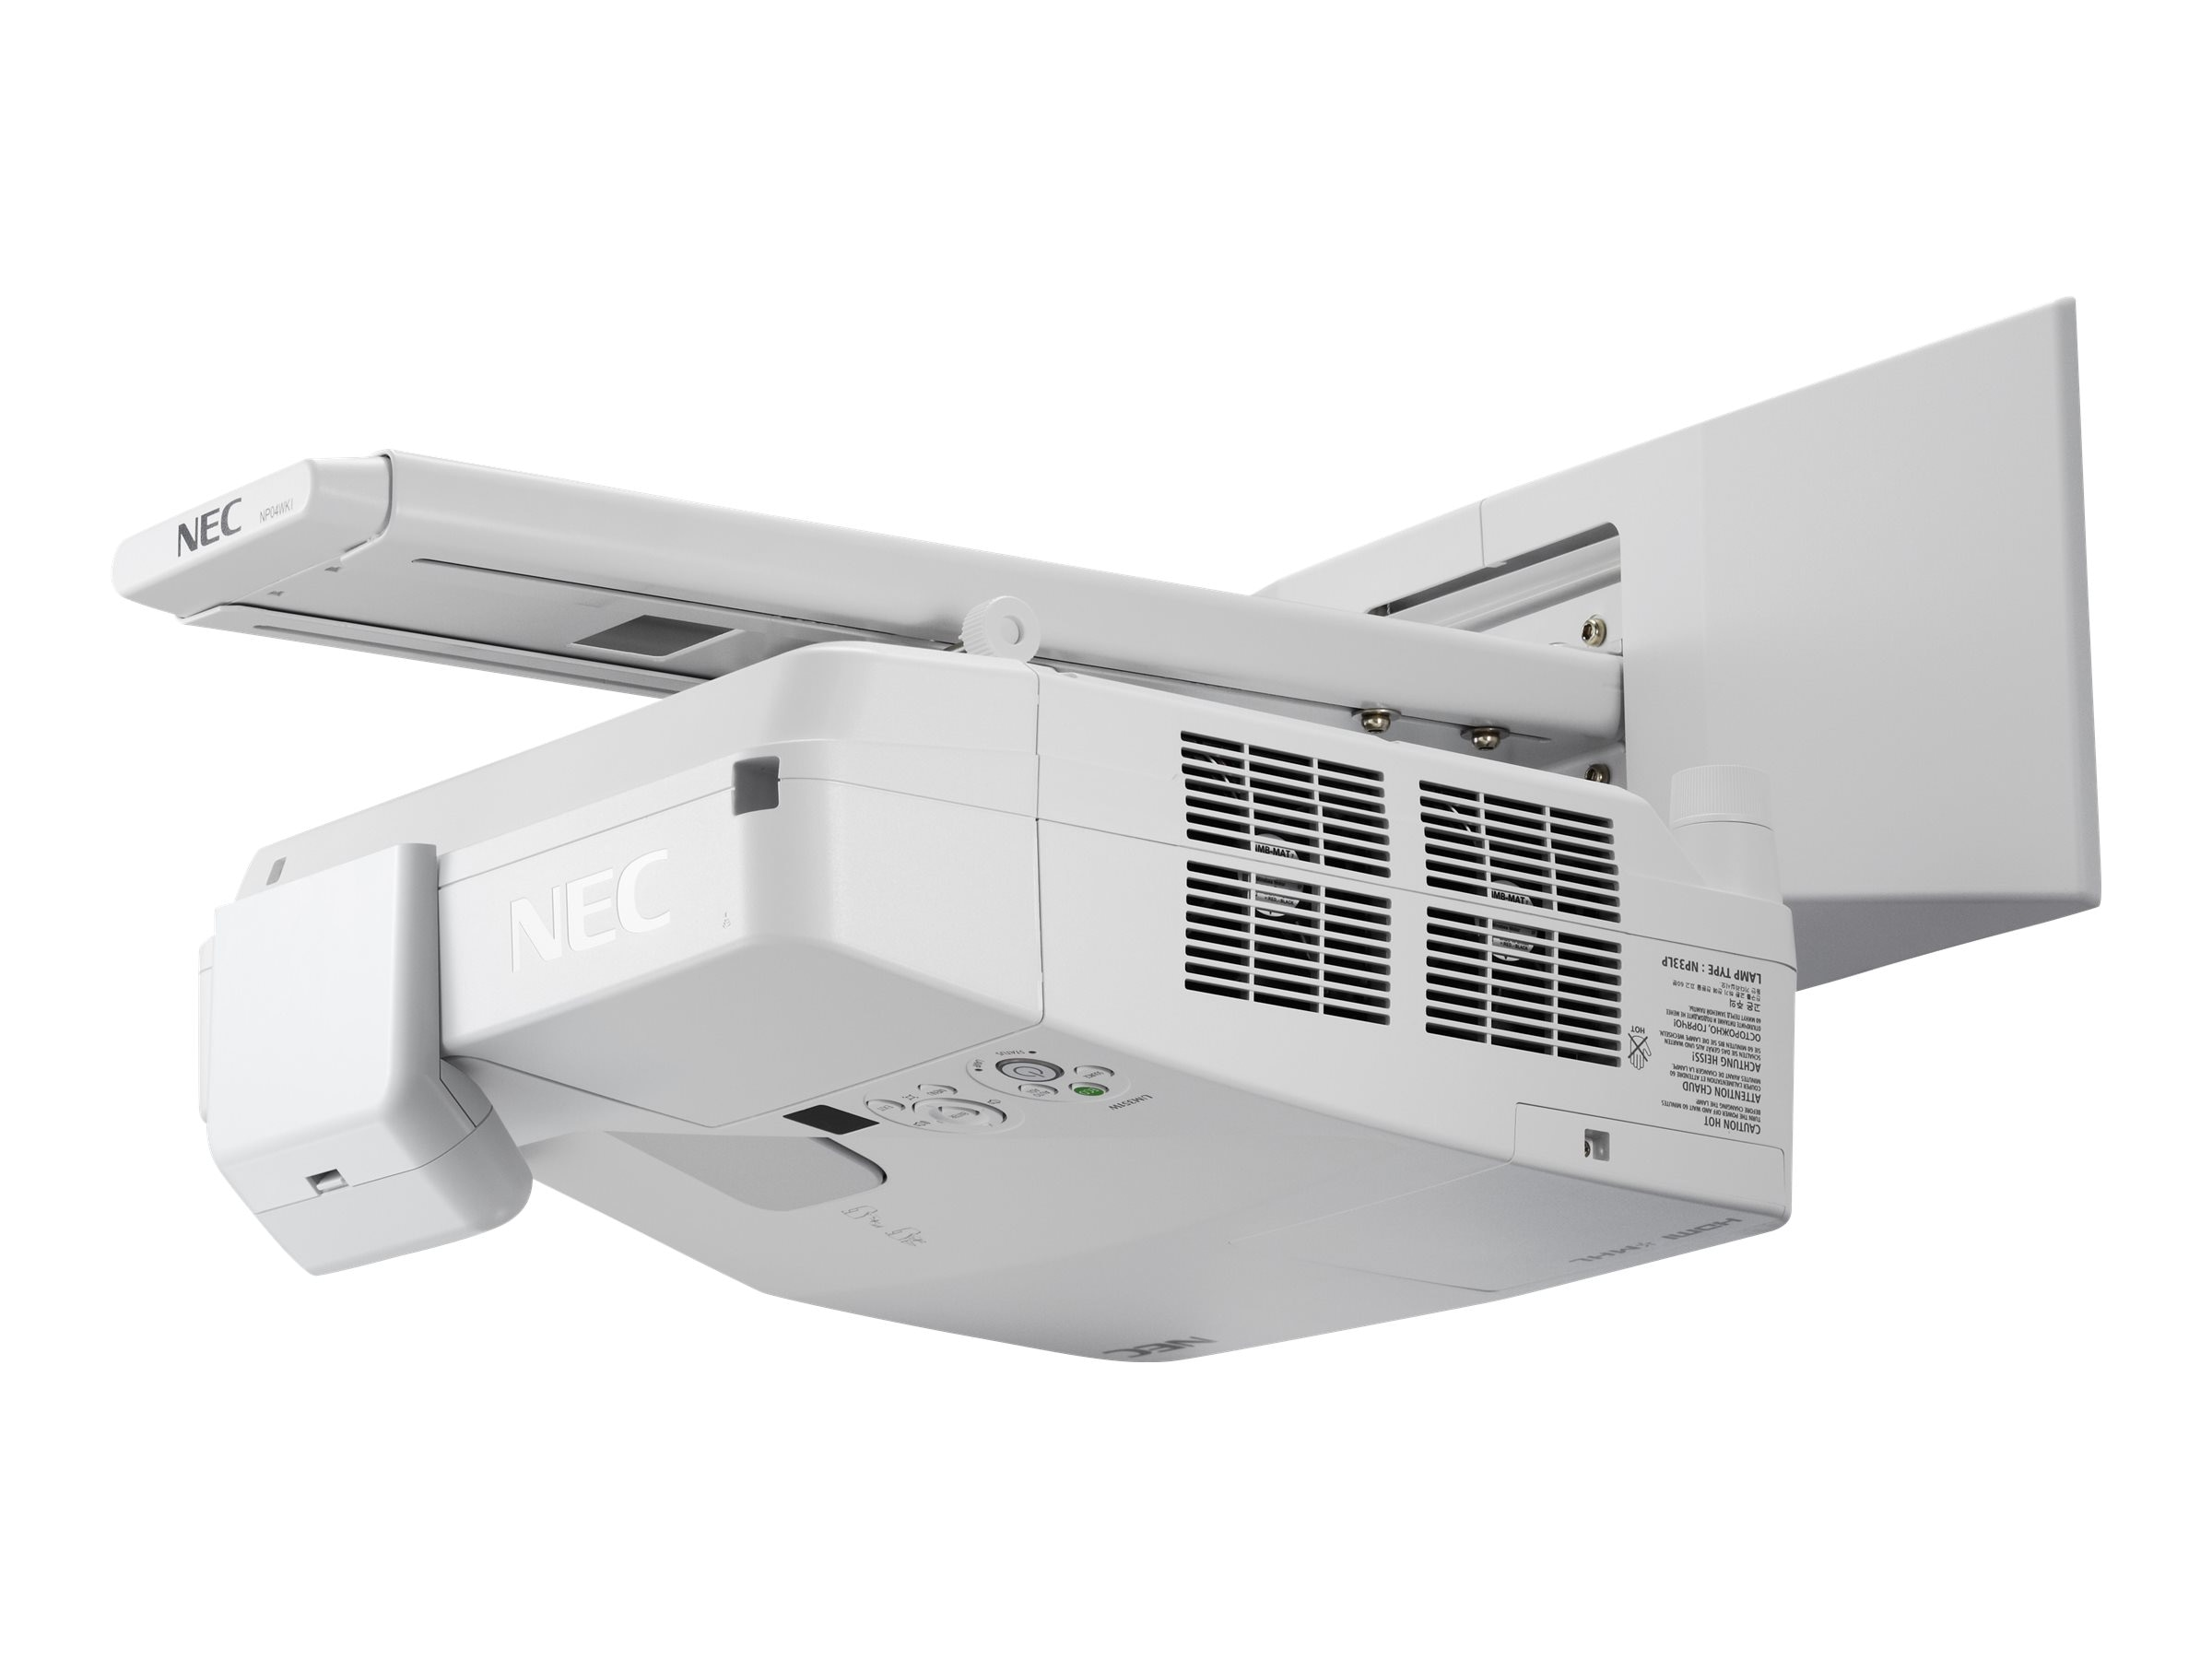 NEC UM351W Ultra Short Throw LCD Projector, 3500 Lumens, White with Interactive Module, Wall Mount, Pens, NP-UM351WI-WK